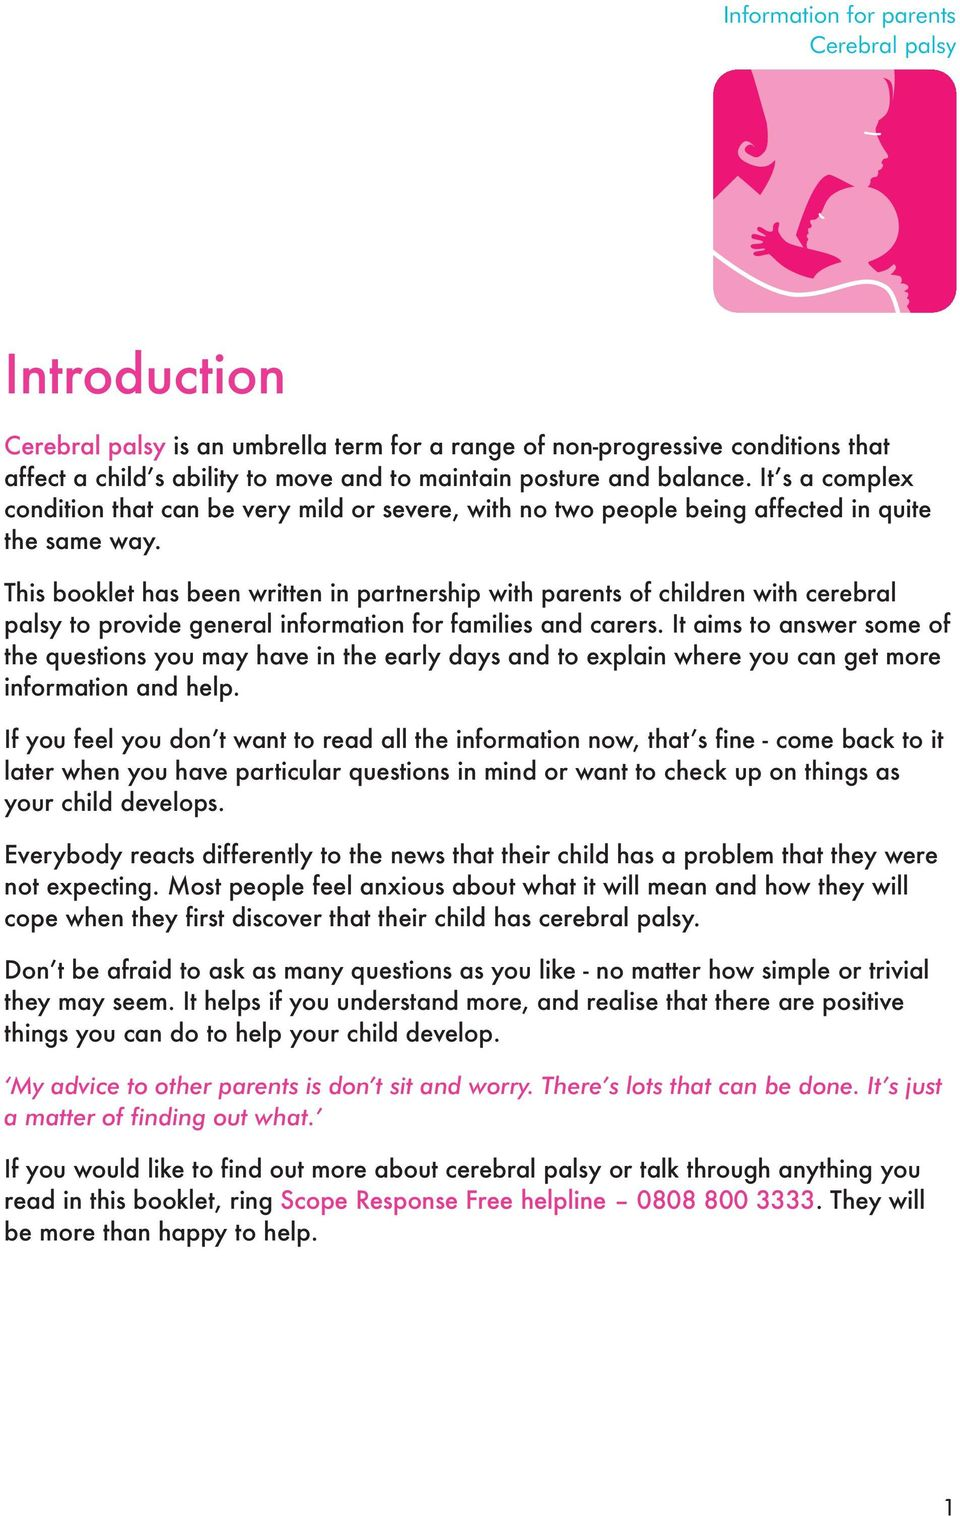 This booklet has been written in partnership with parents of children with cerebral palsy to provide general information for families and carers.